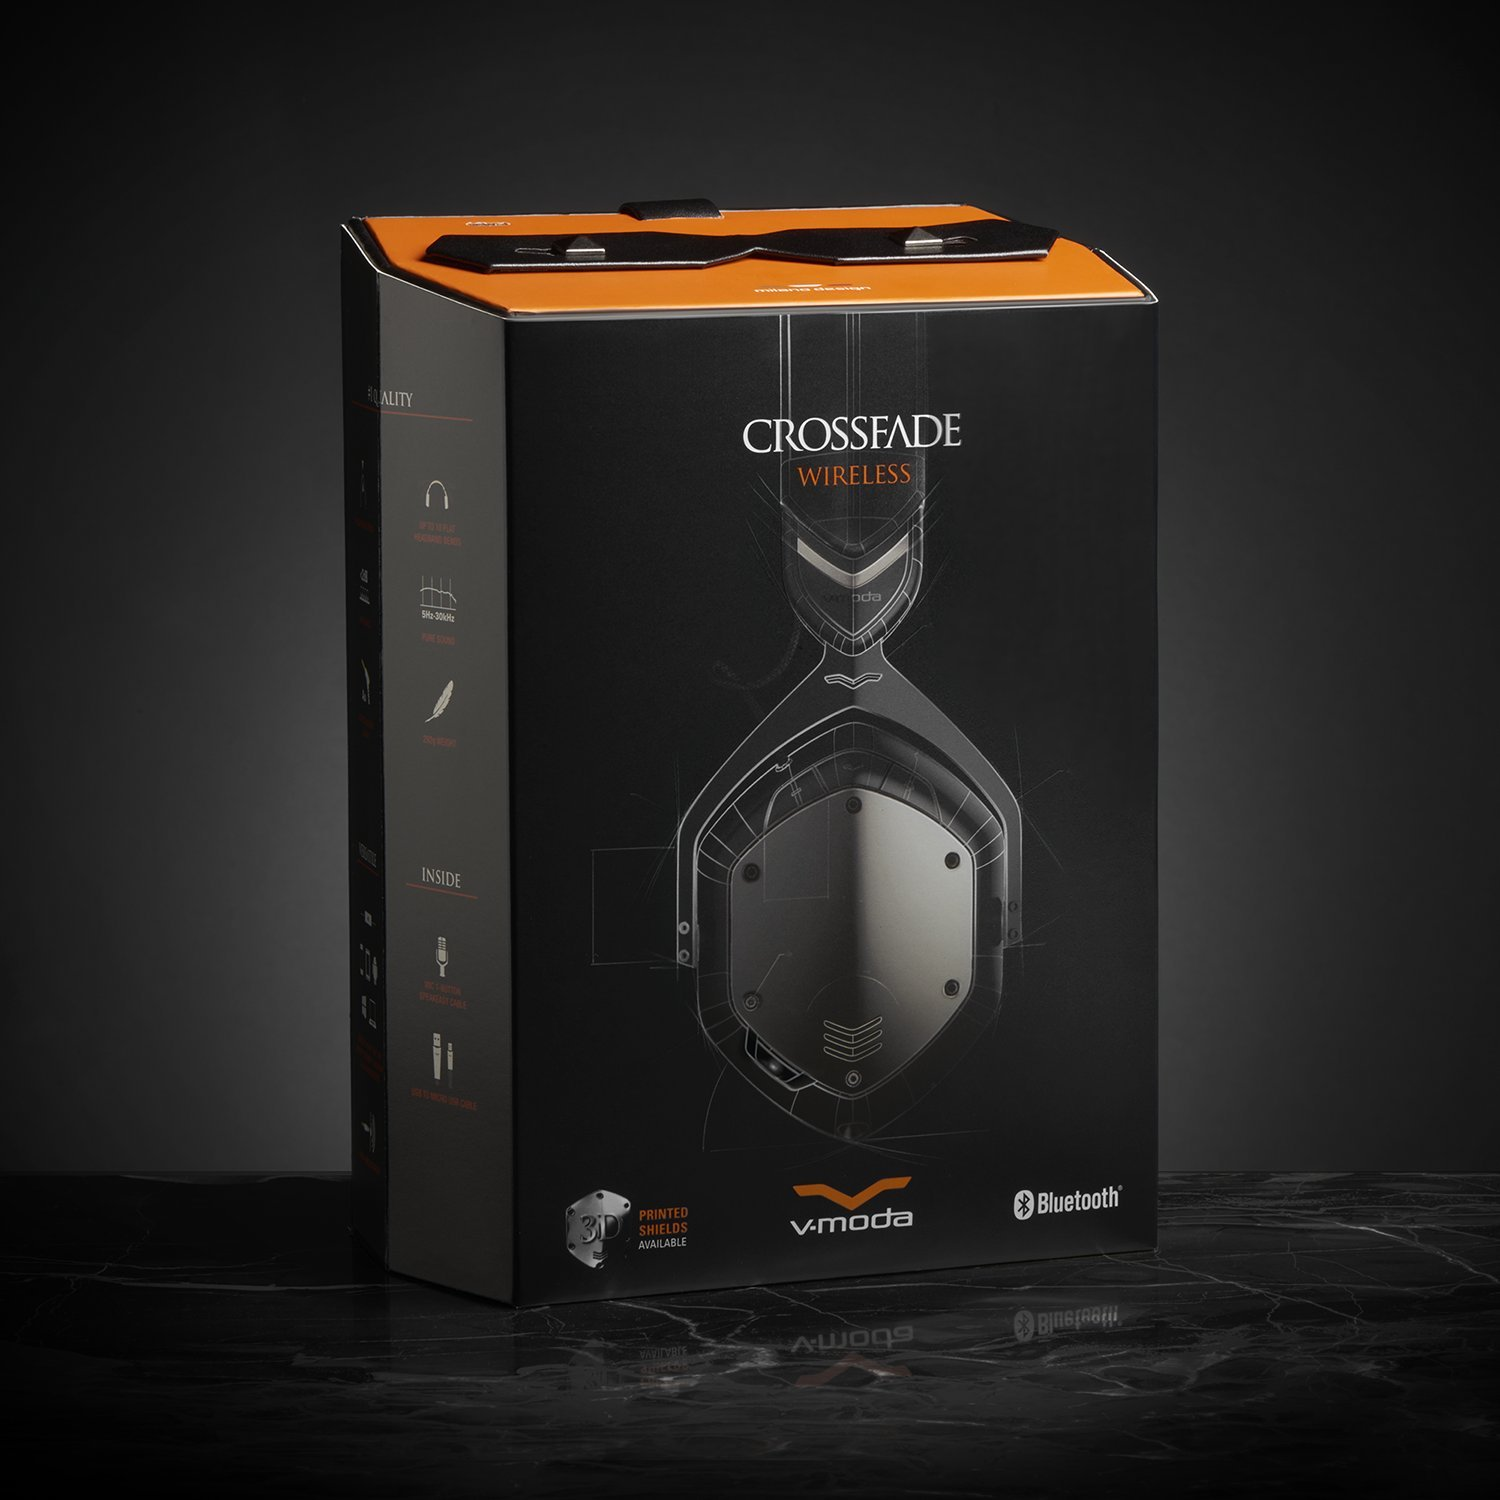 v moda crossfade wireless headphones